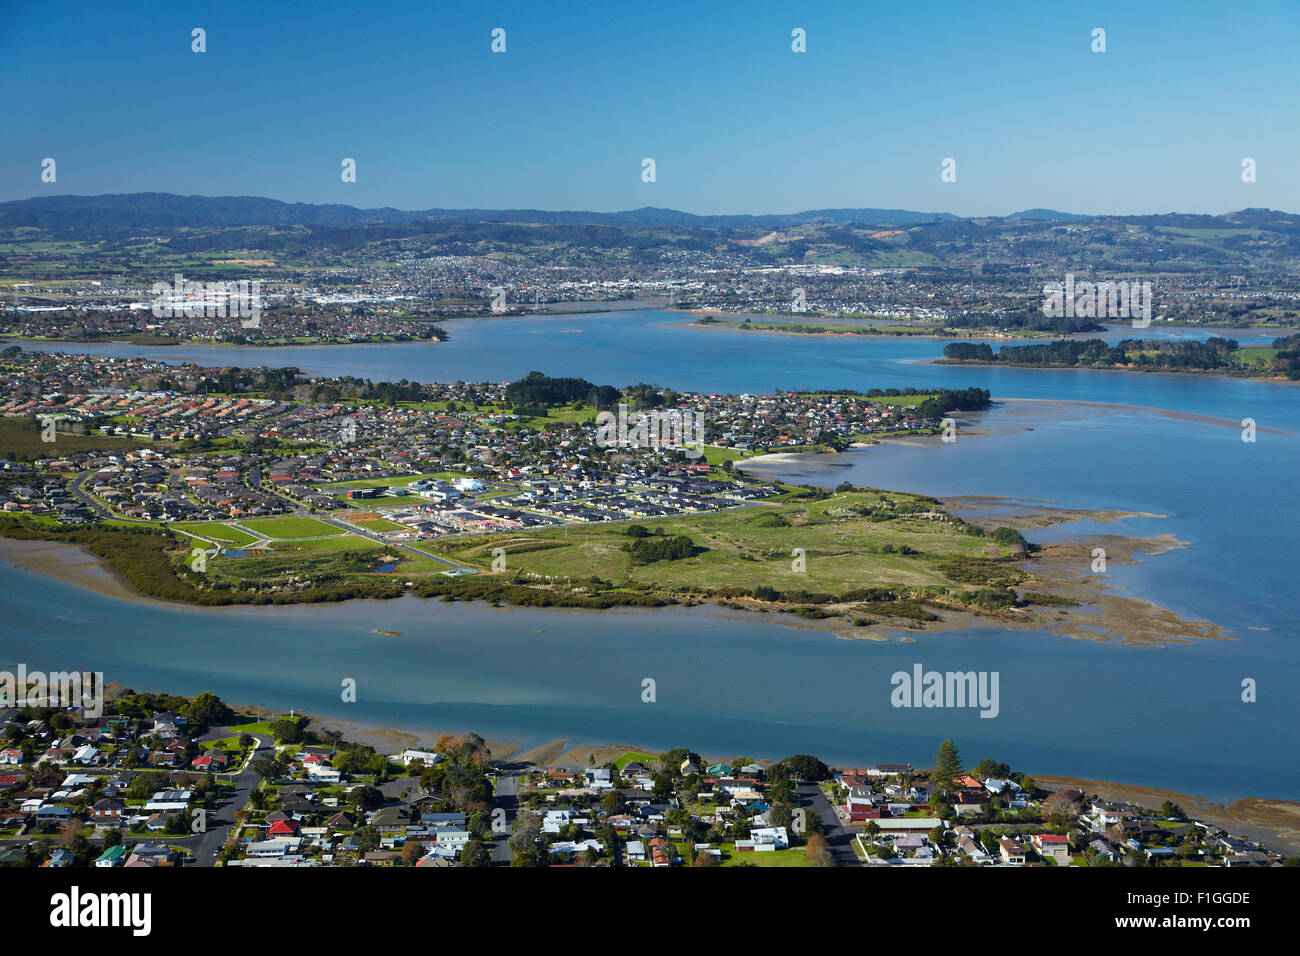 Weymouth, Waimahia Creek, Wattle Downs and Manukau Harbour, Auckland, North Island, New Zealand - aerial - Stock Image